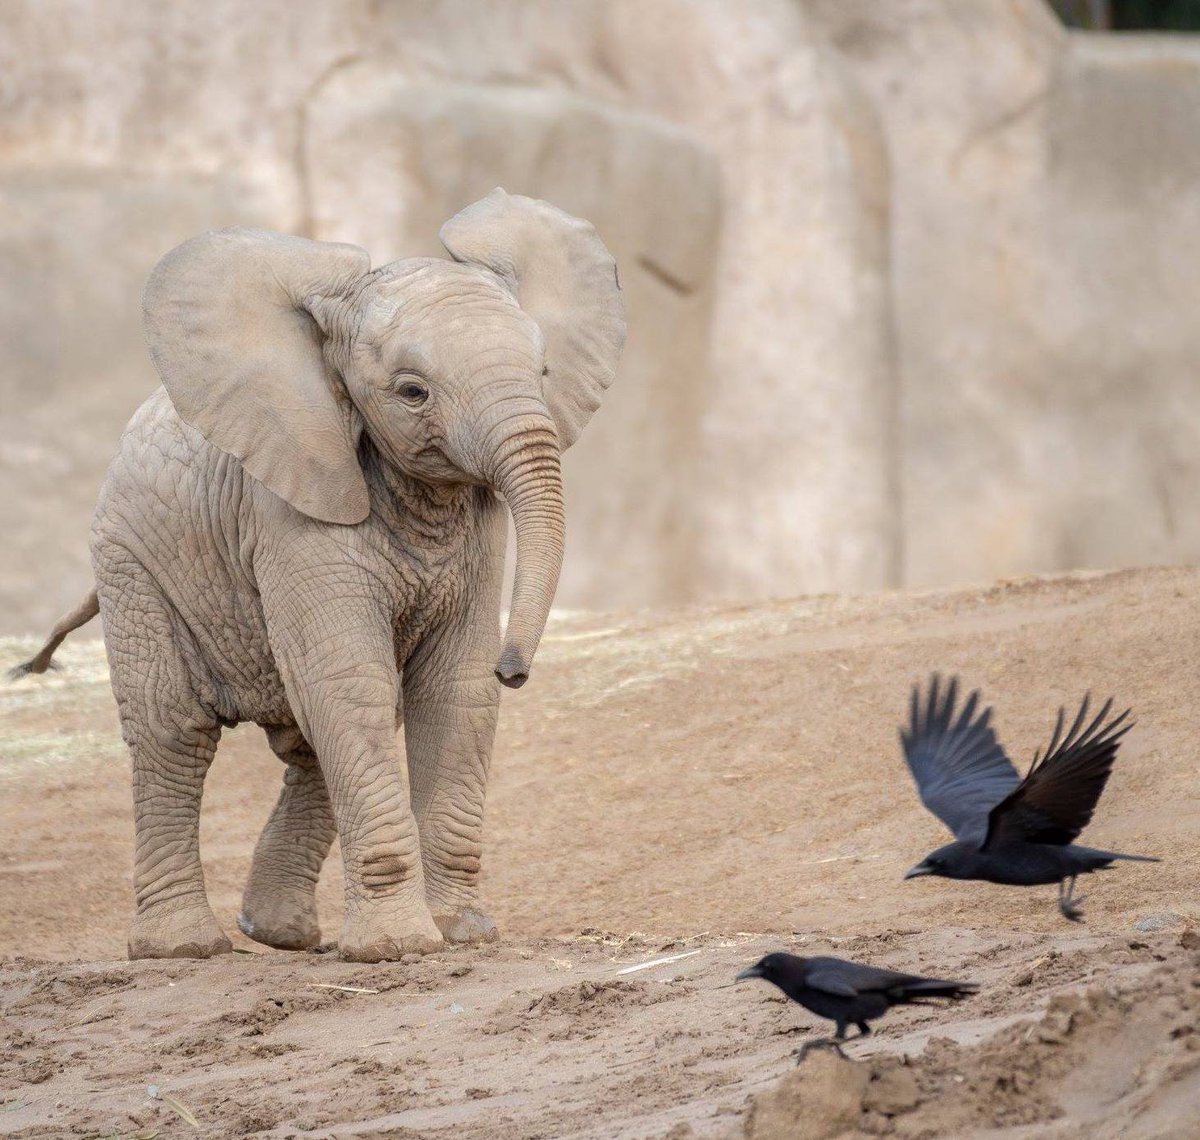 Don&#39;t come around here never more. #KaiaAllenPoe #QuothTheRaven #PachydermPair Todd Lahman <br>http://pic.twitter.com/36uRjnfHJG